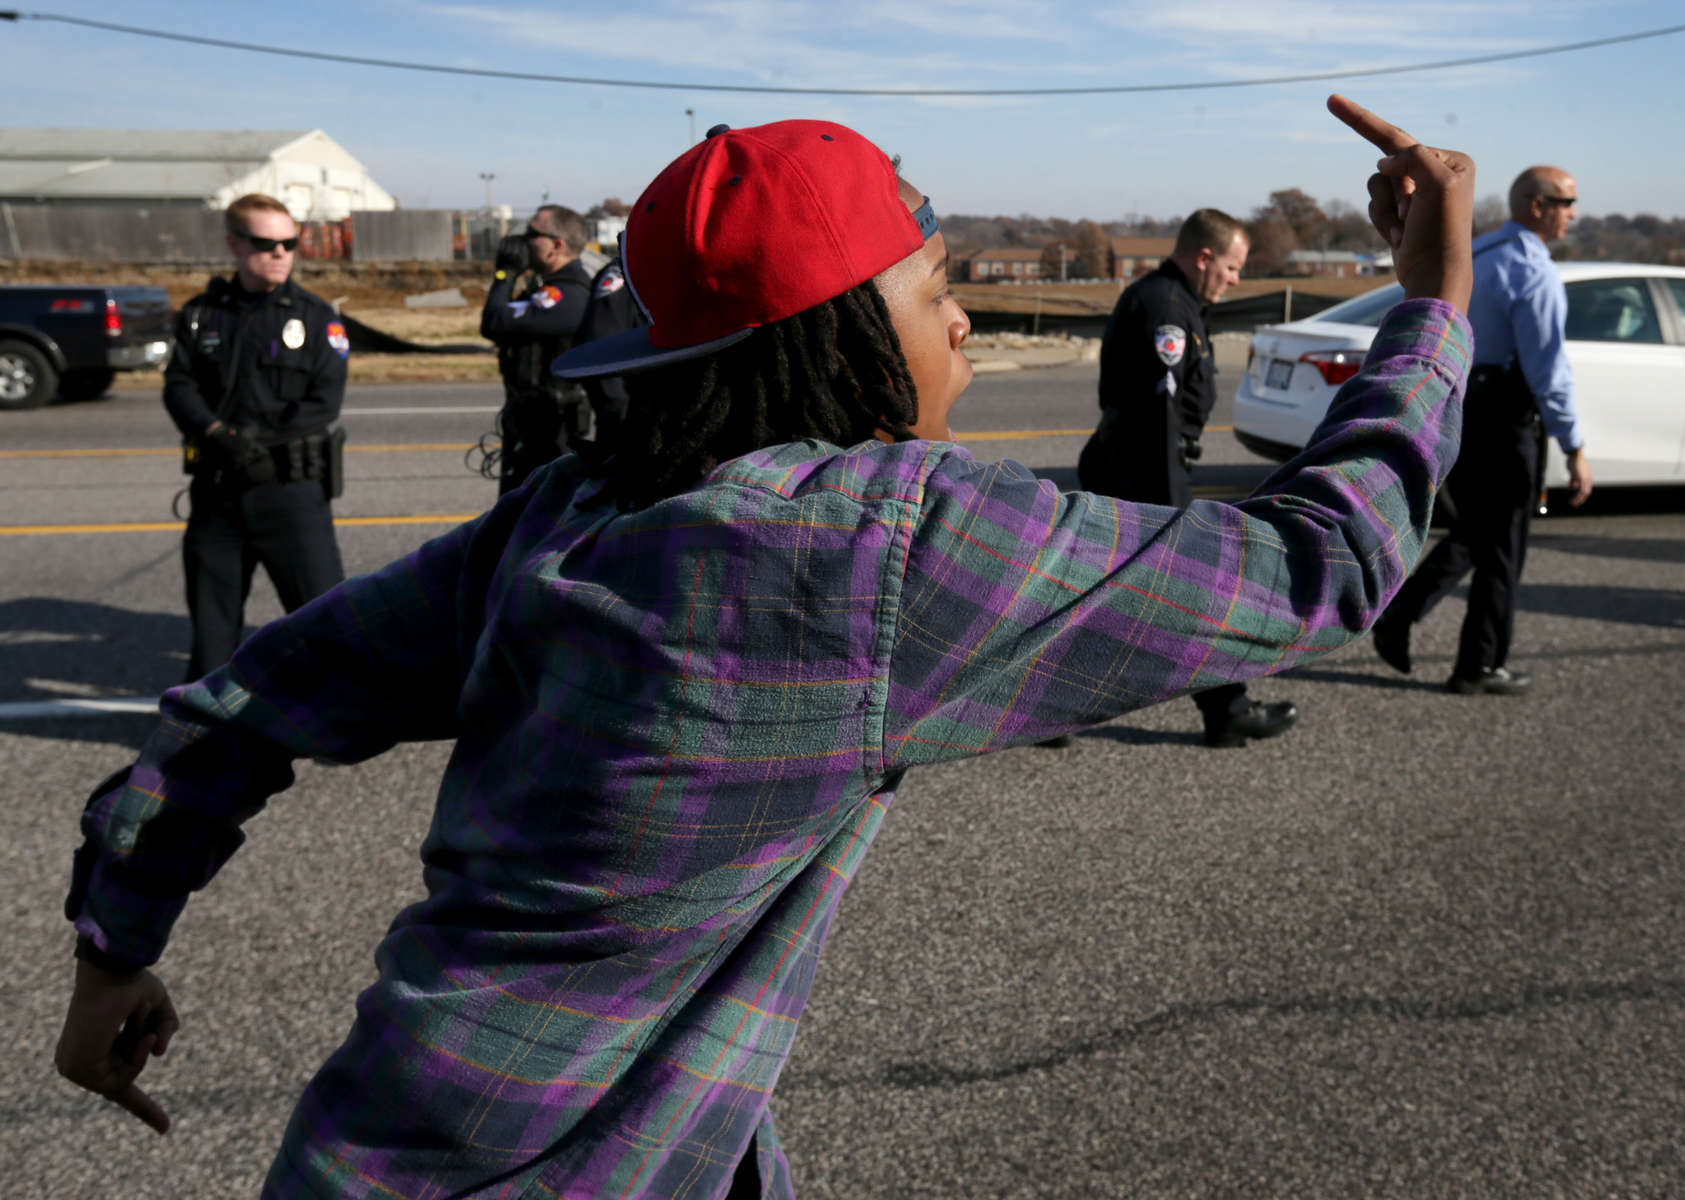 A protester balances along the curb while marching past a line of police flipping them off during a demonstration along Hanley Road on Saturday, Nov. 29, 2014.Photo By David Carson, dcarson@post-dispatch.com